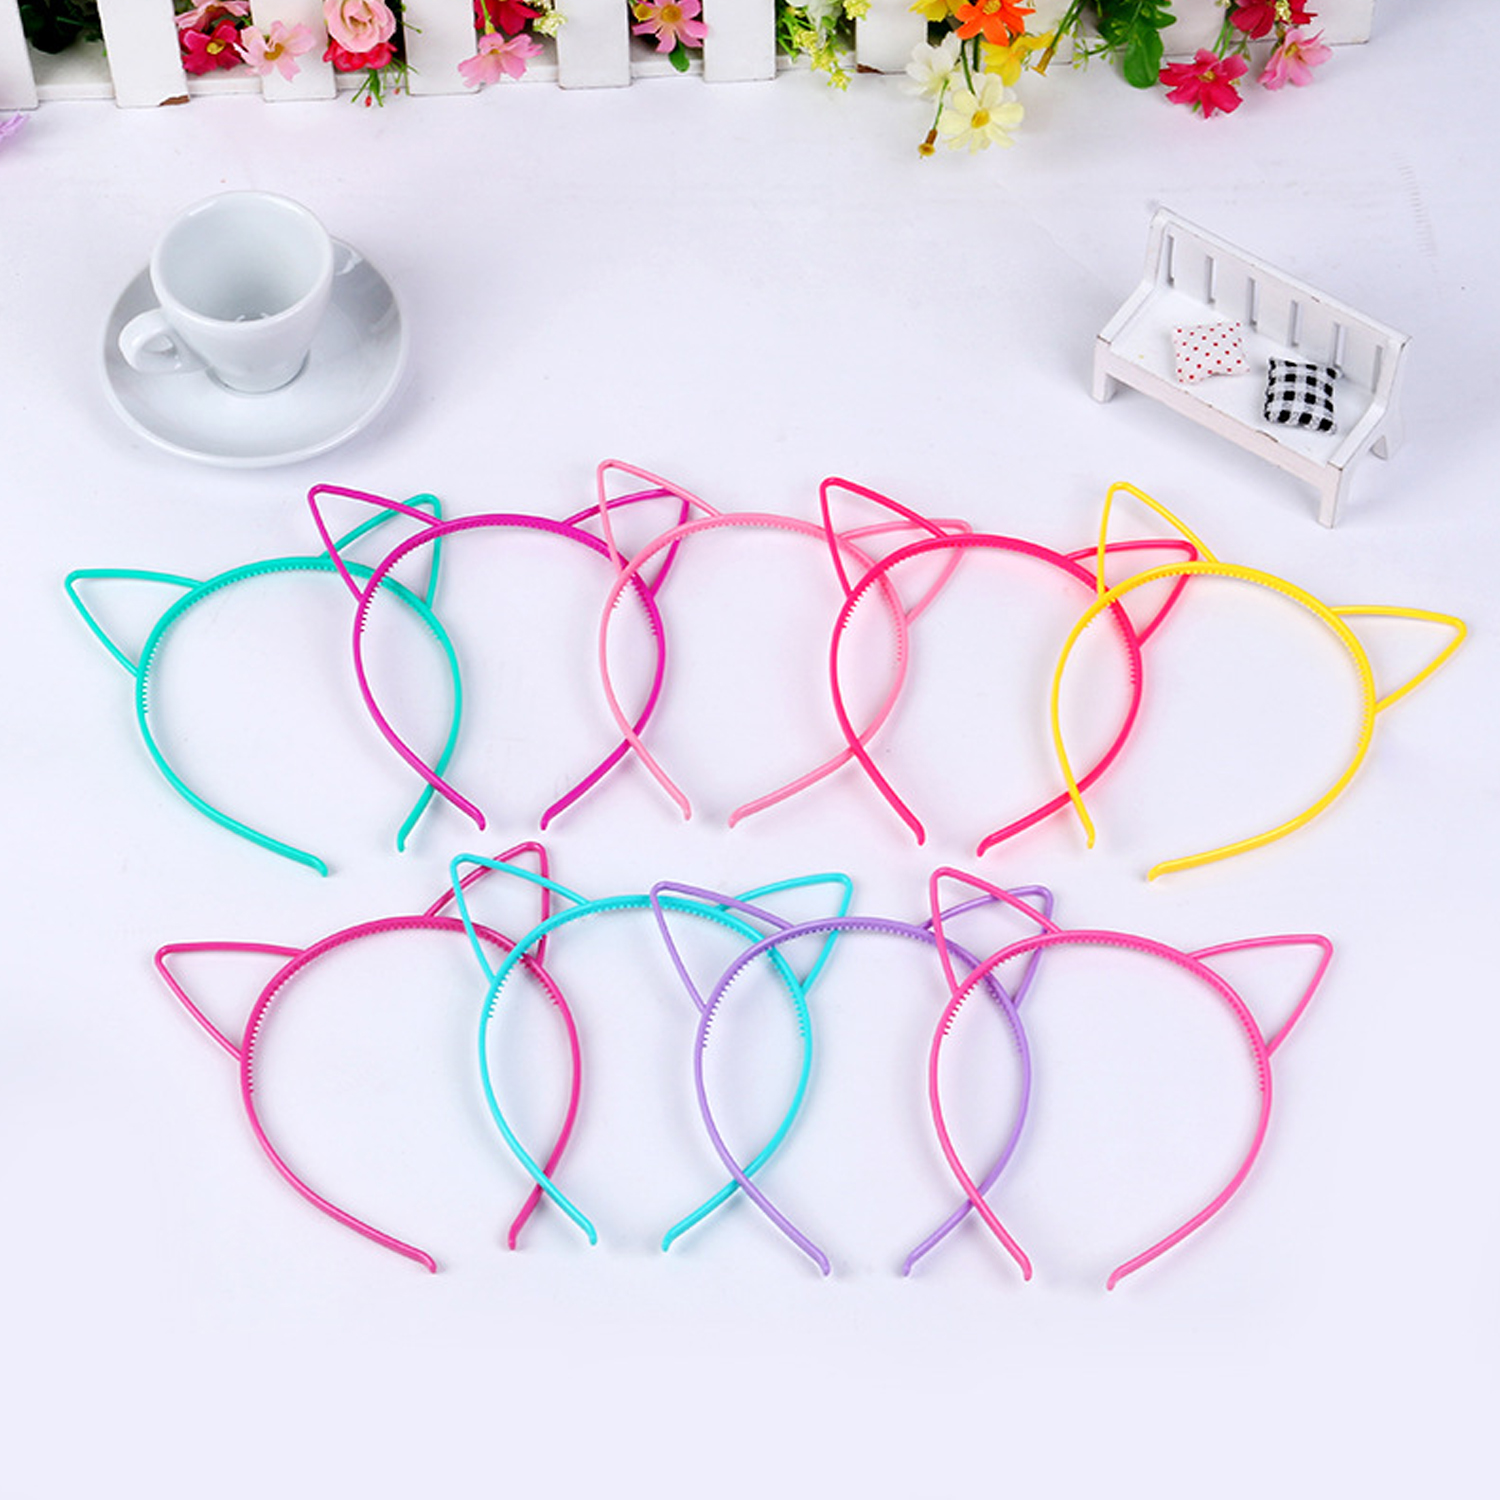 Besegad 14PCS Colorful Plastic Fashion Cute Cat Ear Headbands Headwear Toy Gift For Kids Adults Easter Halloween Christmas Party